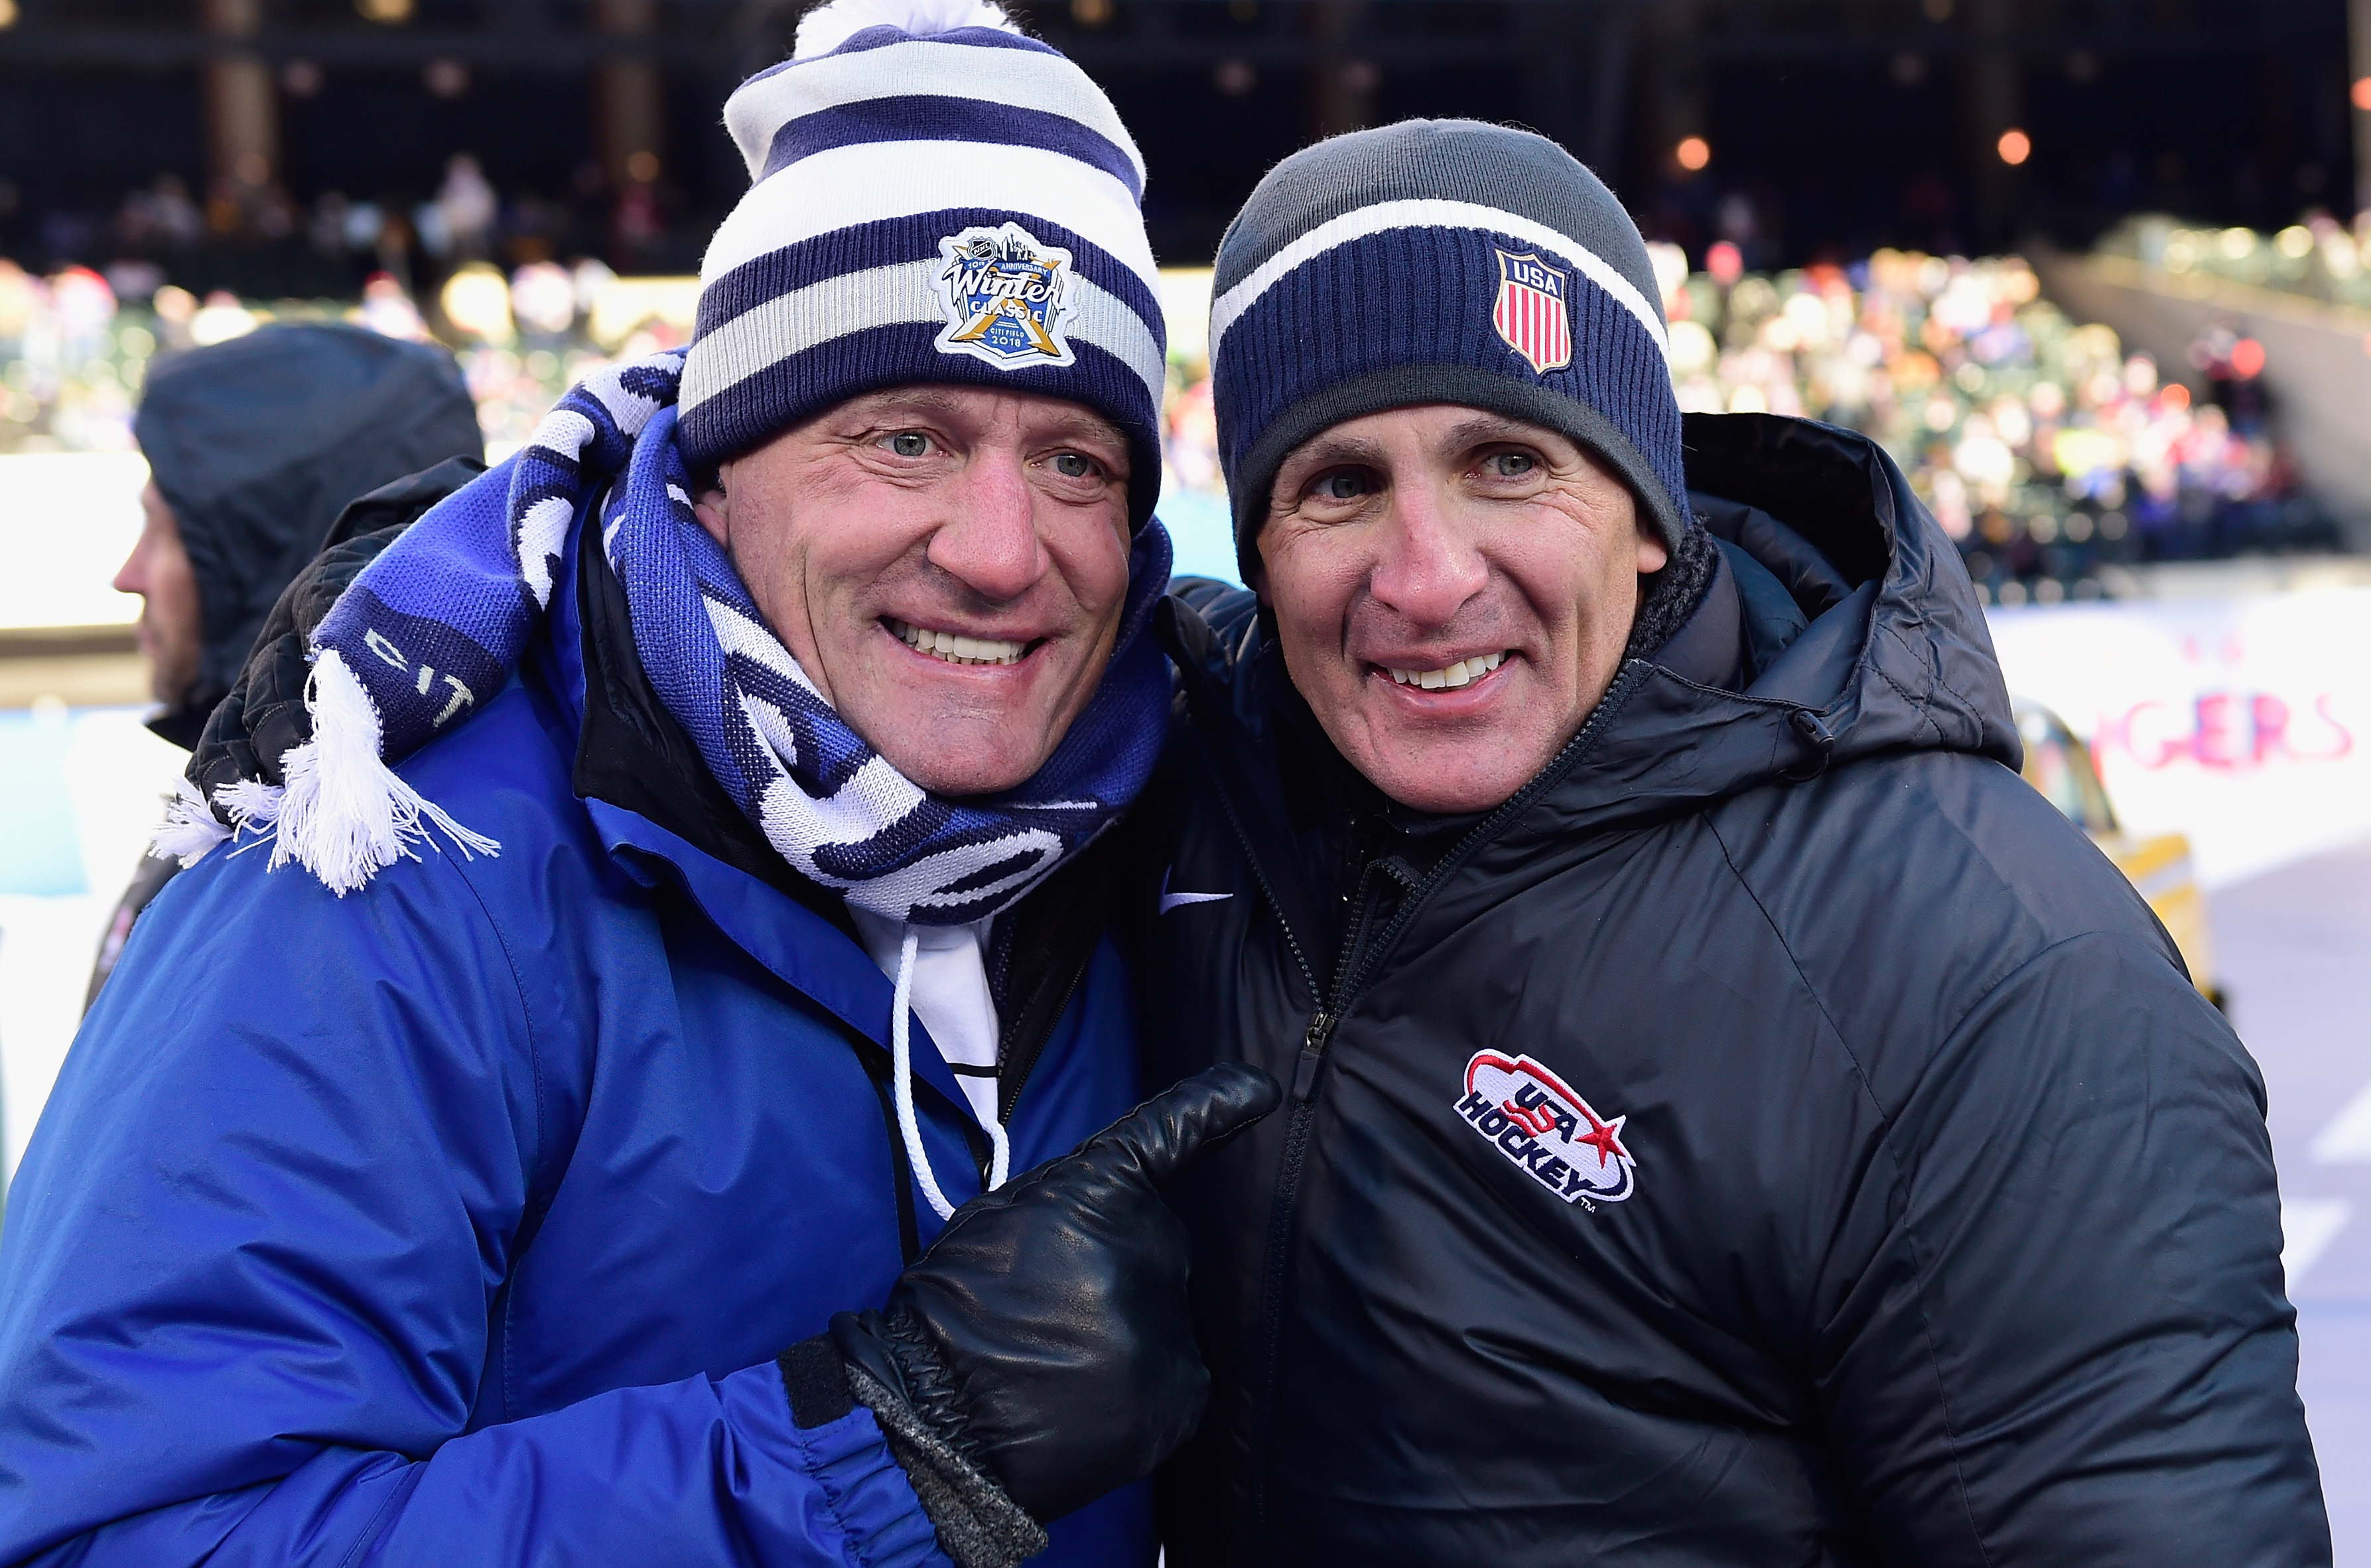 NEW YORK, NY - JANUARY 01: Sportcaster Jeremy Roenick (L) poses with Tony Granato of USA Hockey (R) during the second intermission of the 2018 Bridgestone NHL Winter Classic between the New York Rangers and the Buffalo Sabres at Citi Field on January 1, 2018 in the Flushing neighborhood of the Queens borough of New York City.